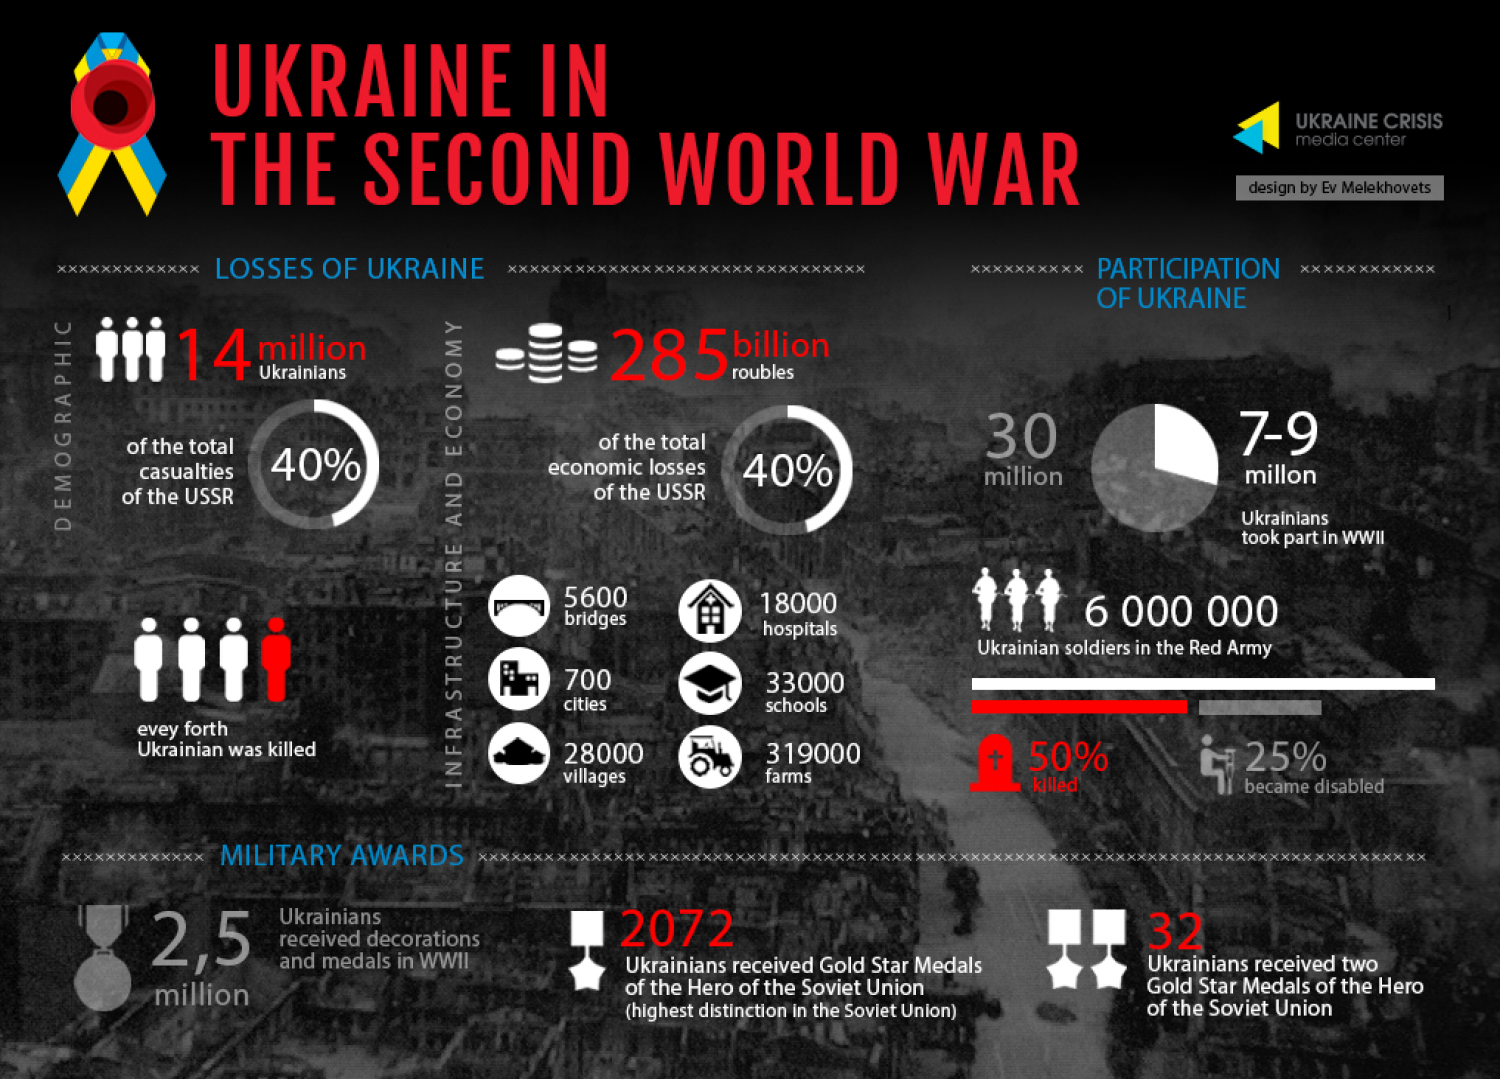 Ukraine in the Second World War Infographic